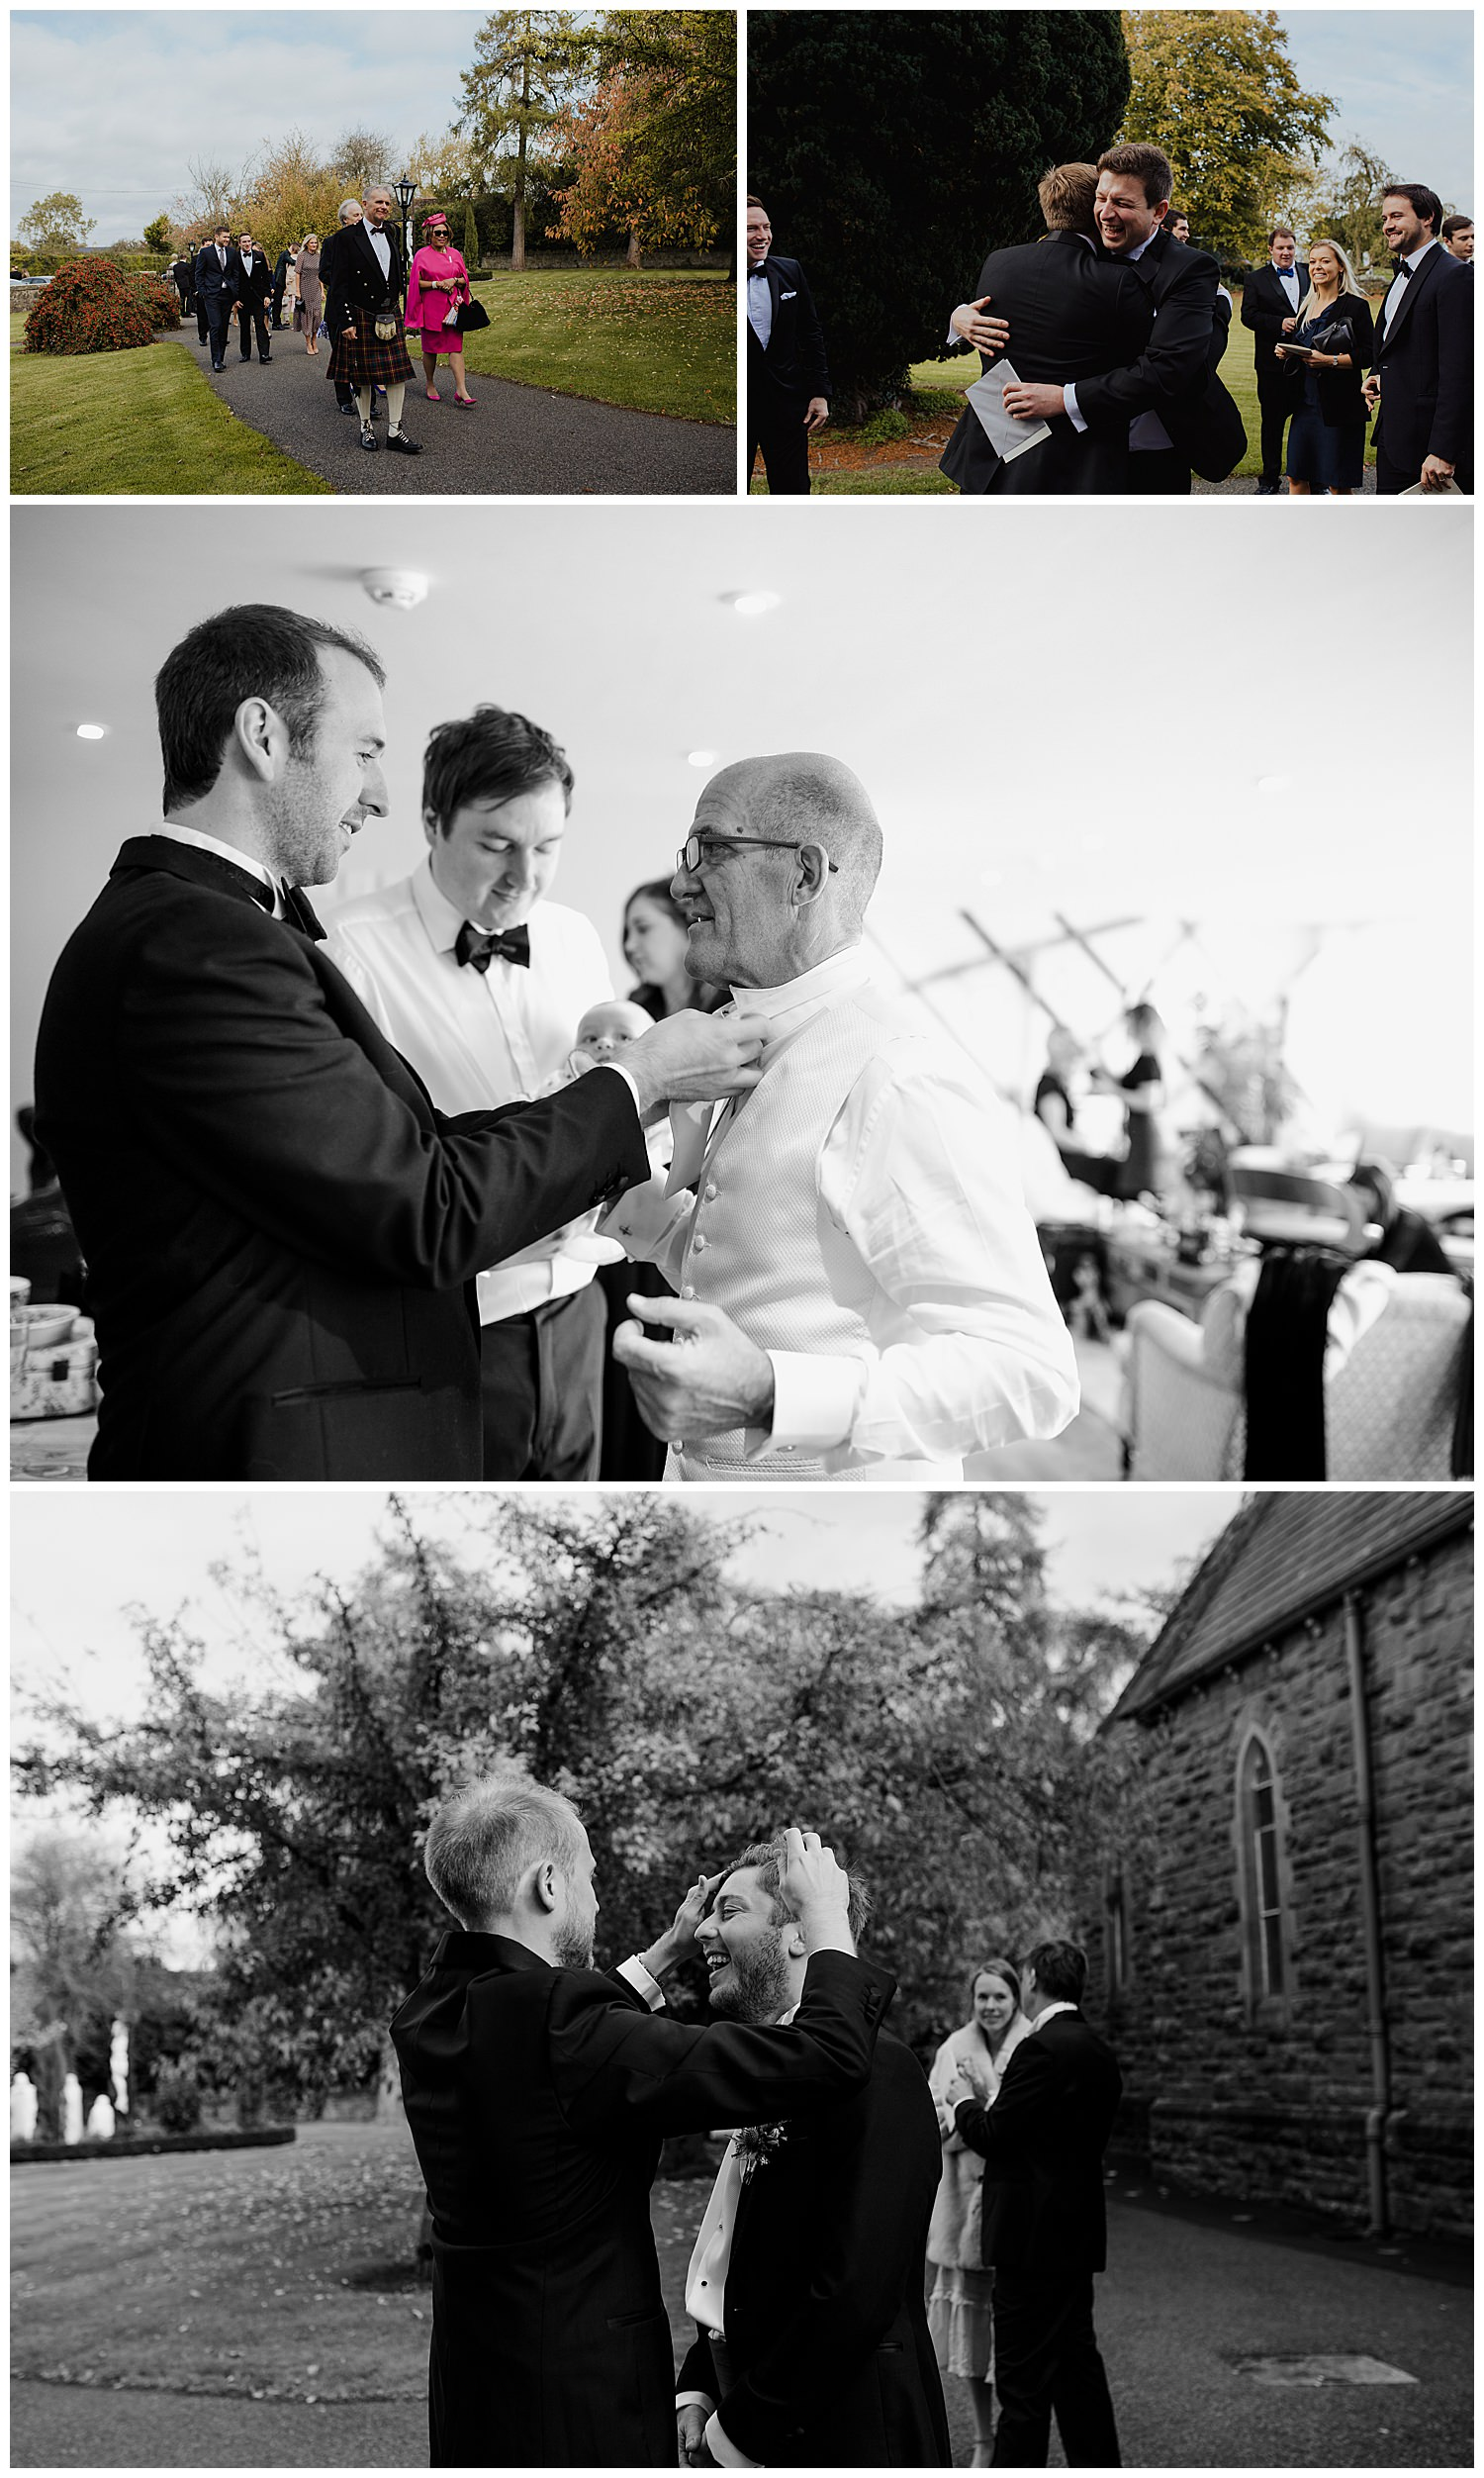 a+s_ballymagarvey_village_wedding_photographer_livia_figueiredo_14.jpg